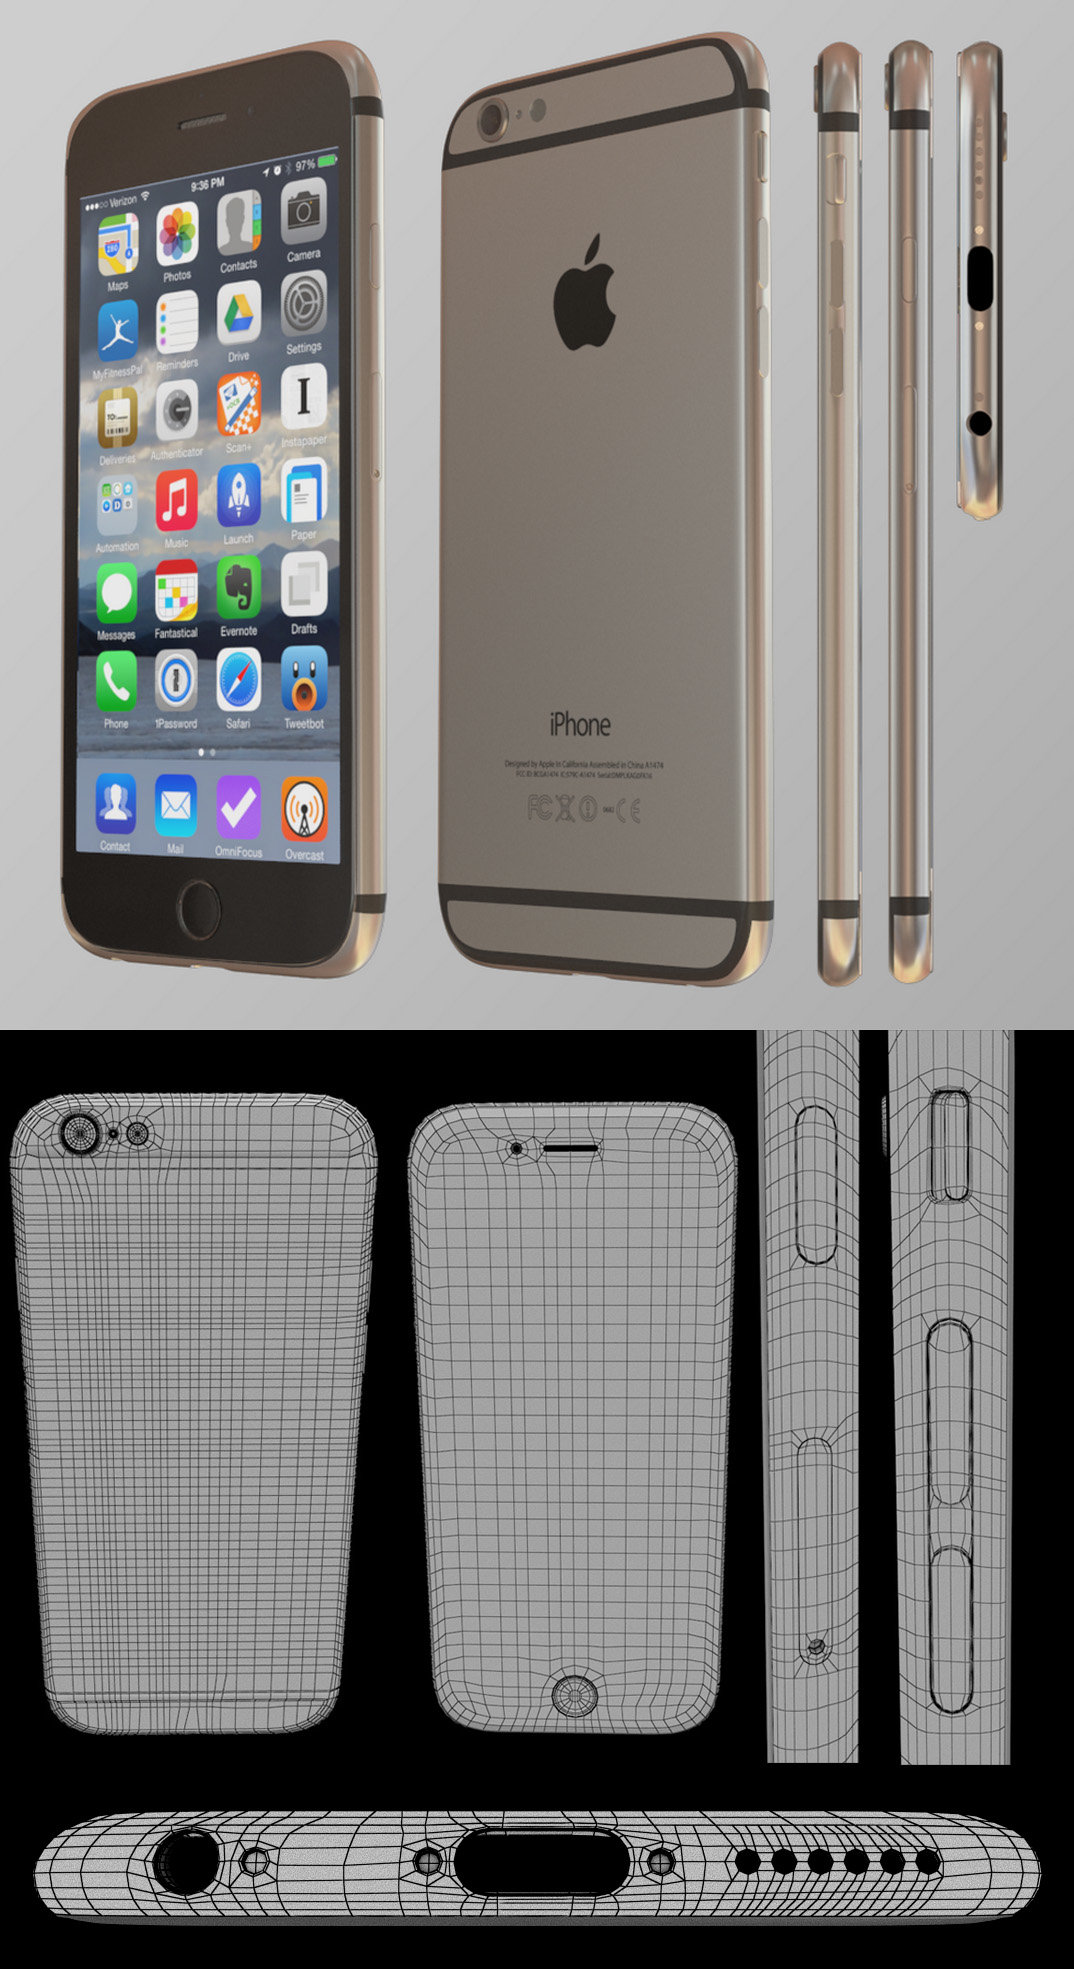 Joachim jensen iphone render